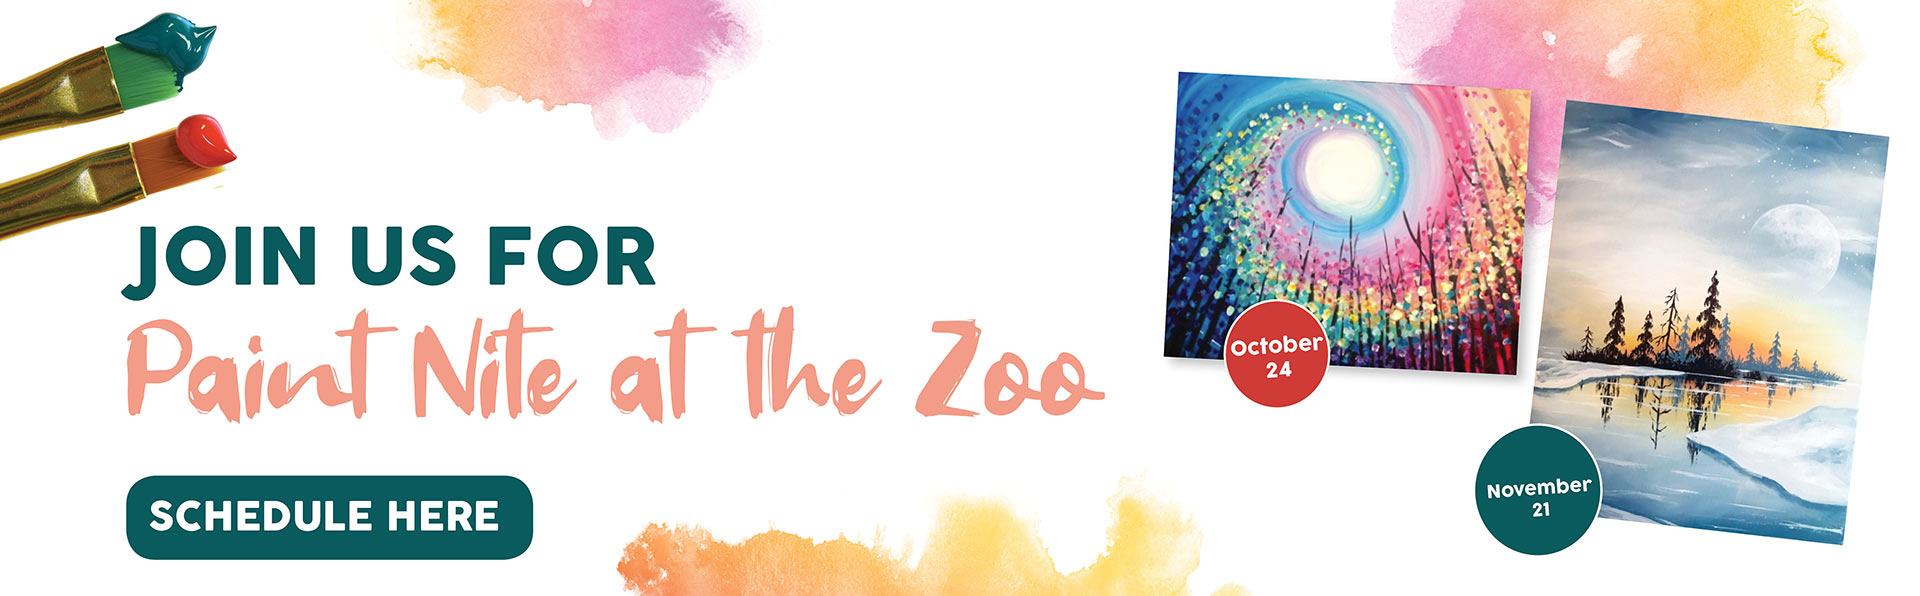 Paint Night at the Zoo Join Us